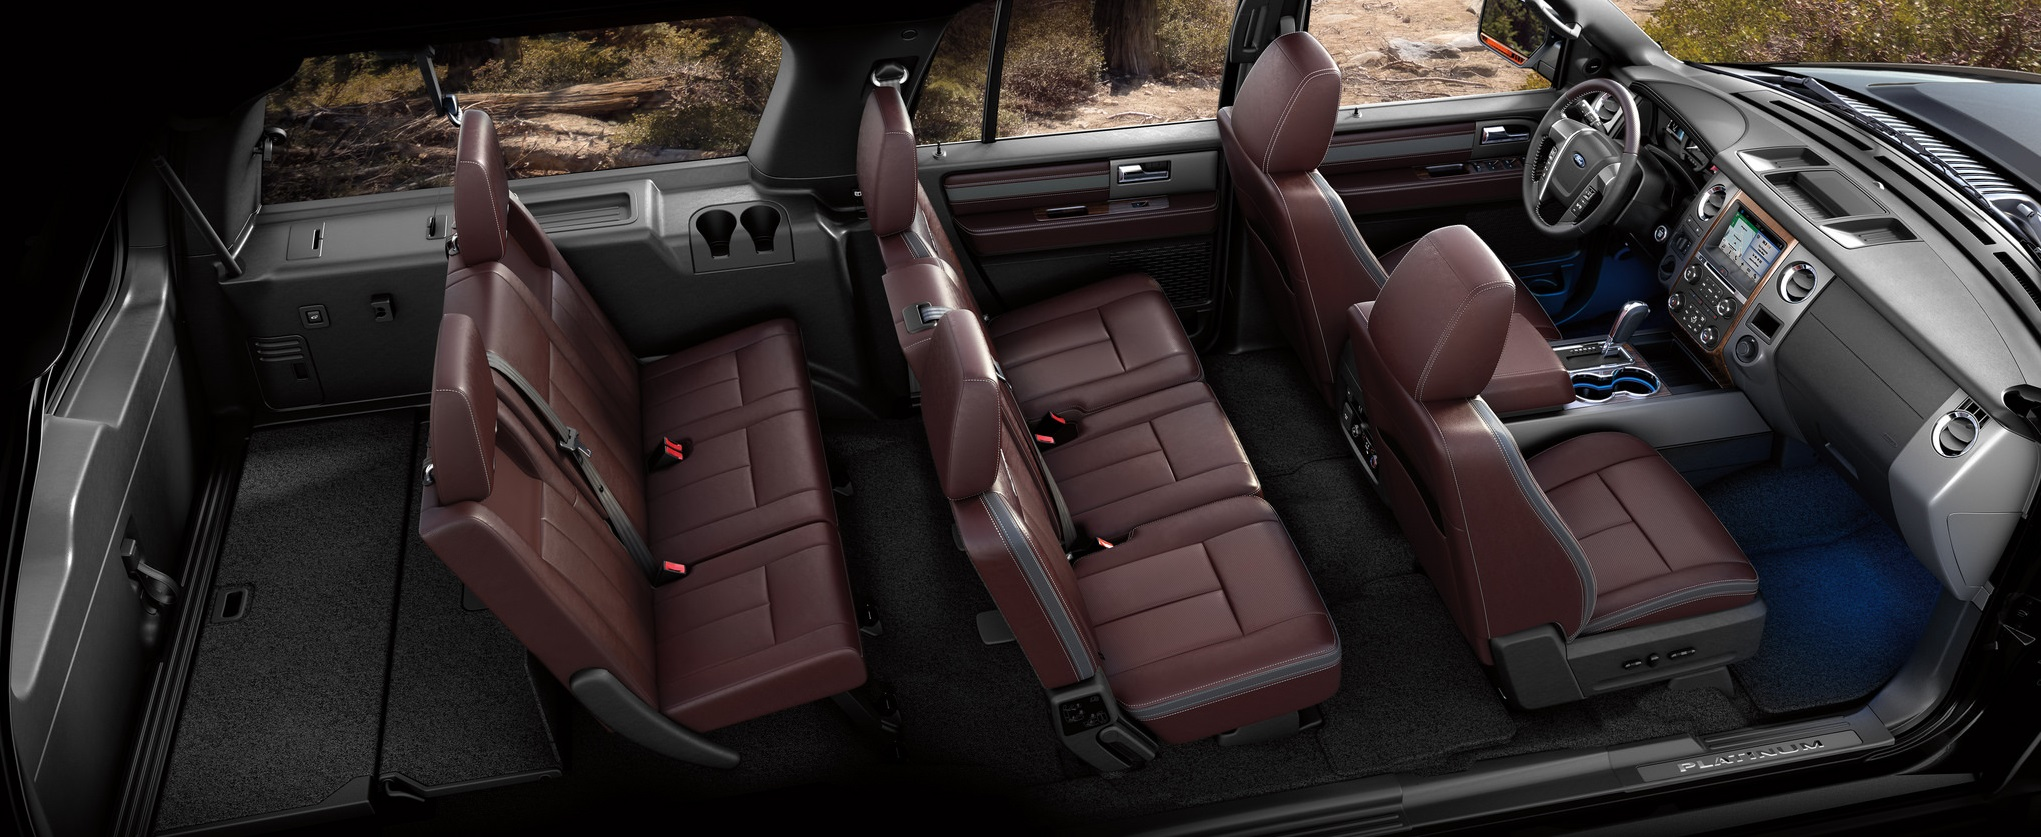 Packey Webb Ford >> 2017 Ford Expedition | Packey Webb Ford | Packey Webb Ford